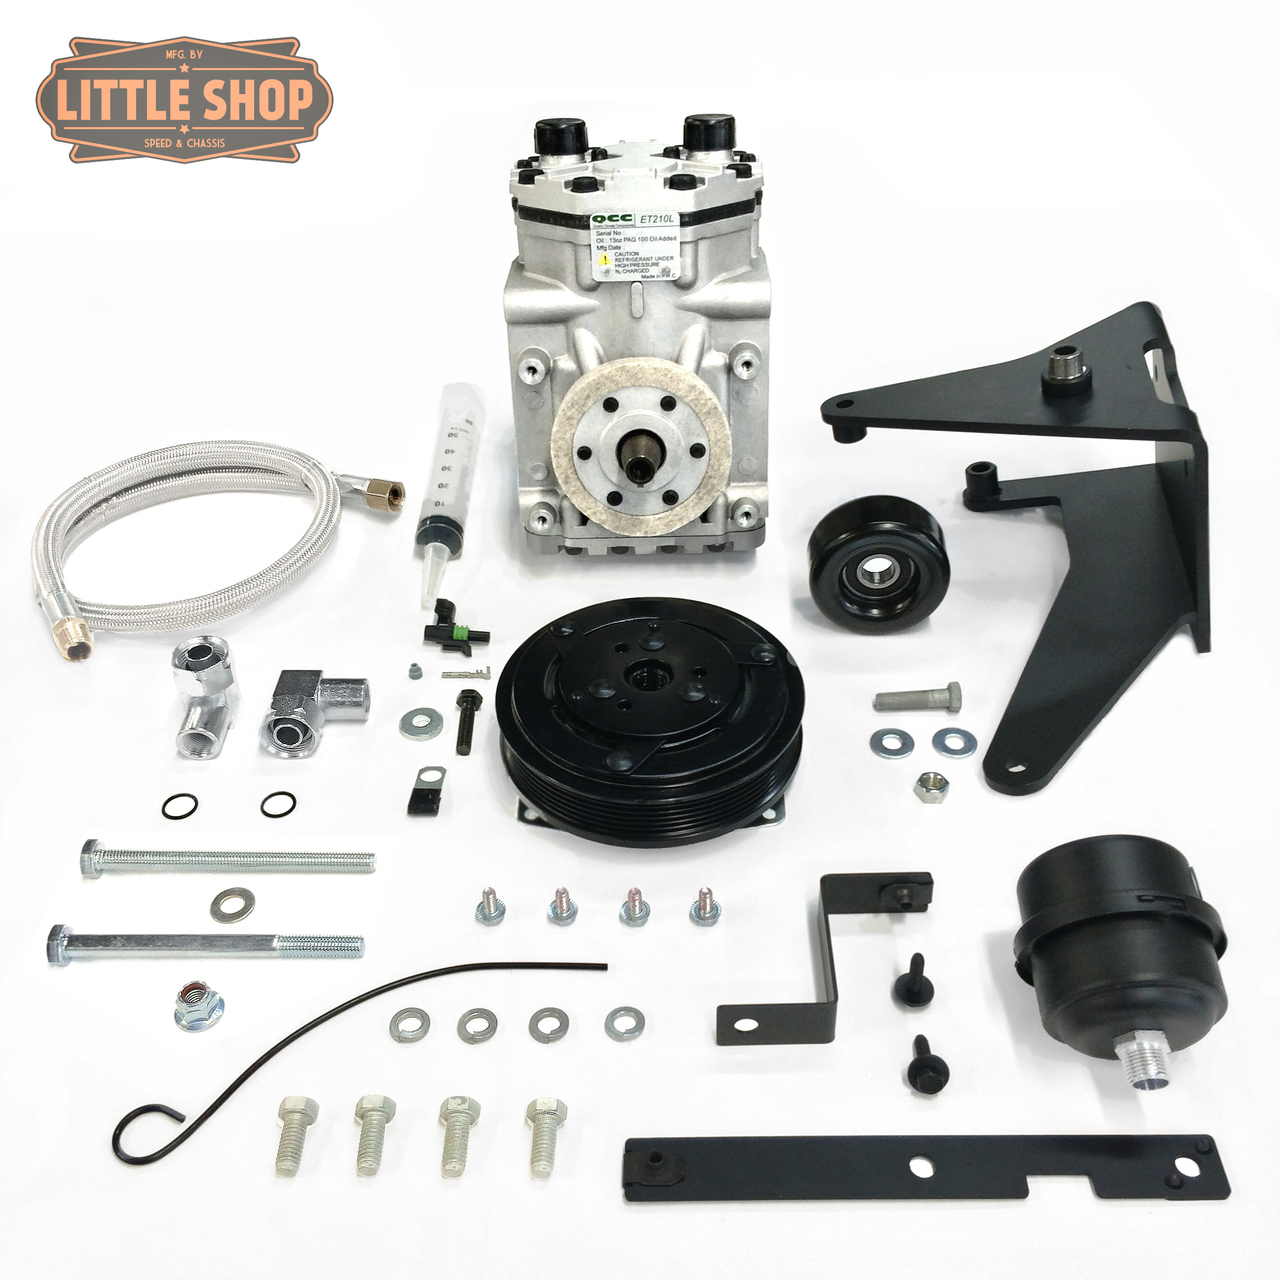 LSMFG-LS-EDC 99'-13' GM 4.8, 5.3, 6.0, 6.2 LS Engine Driven Compressor Kit